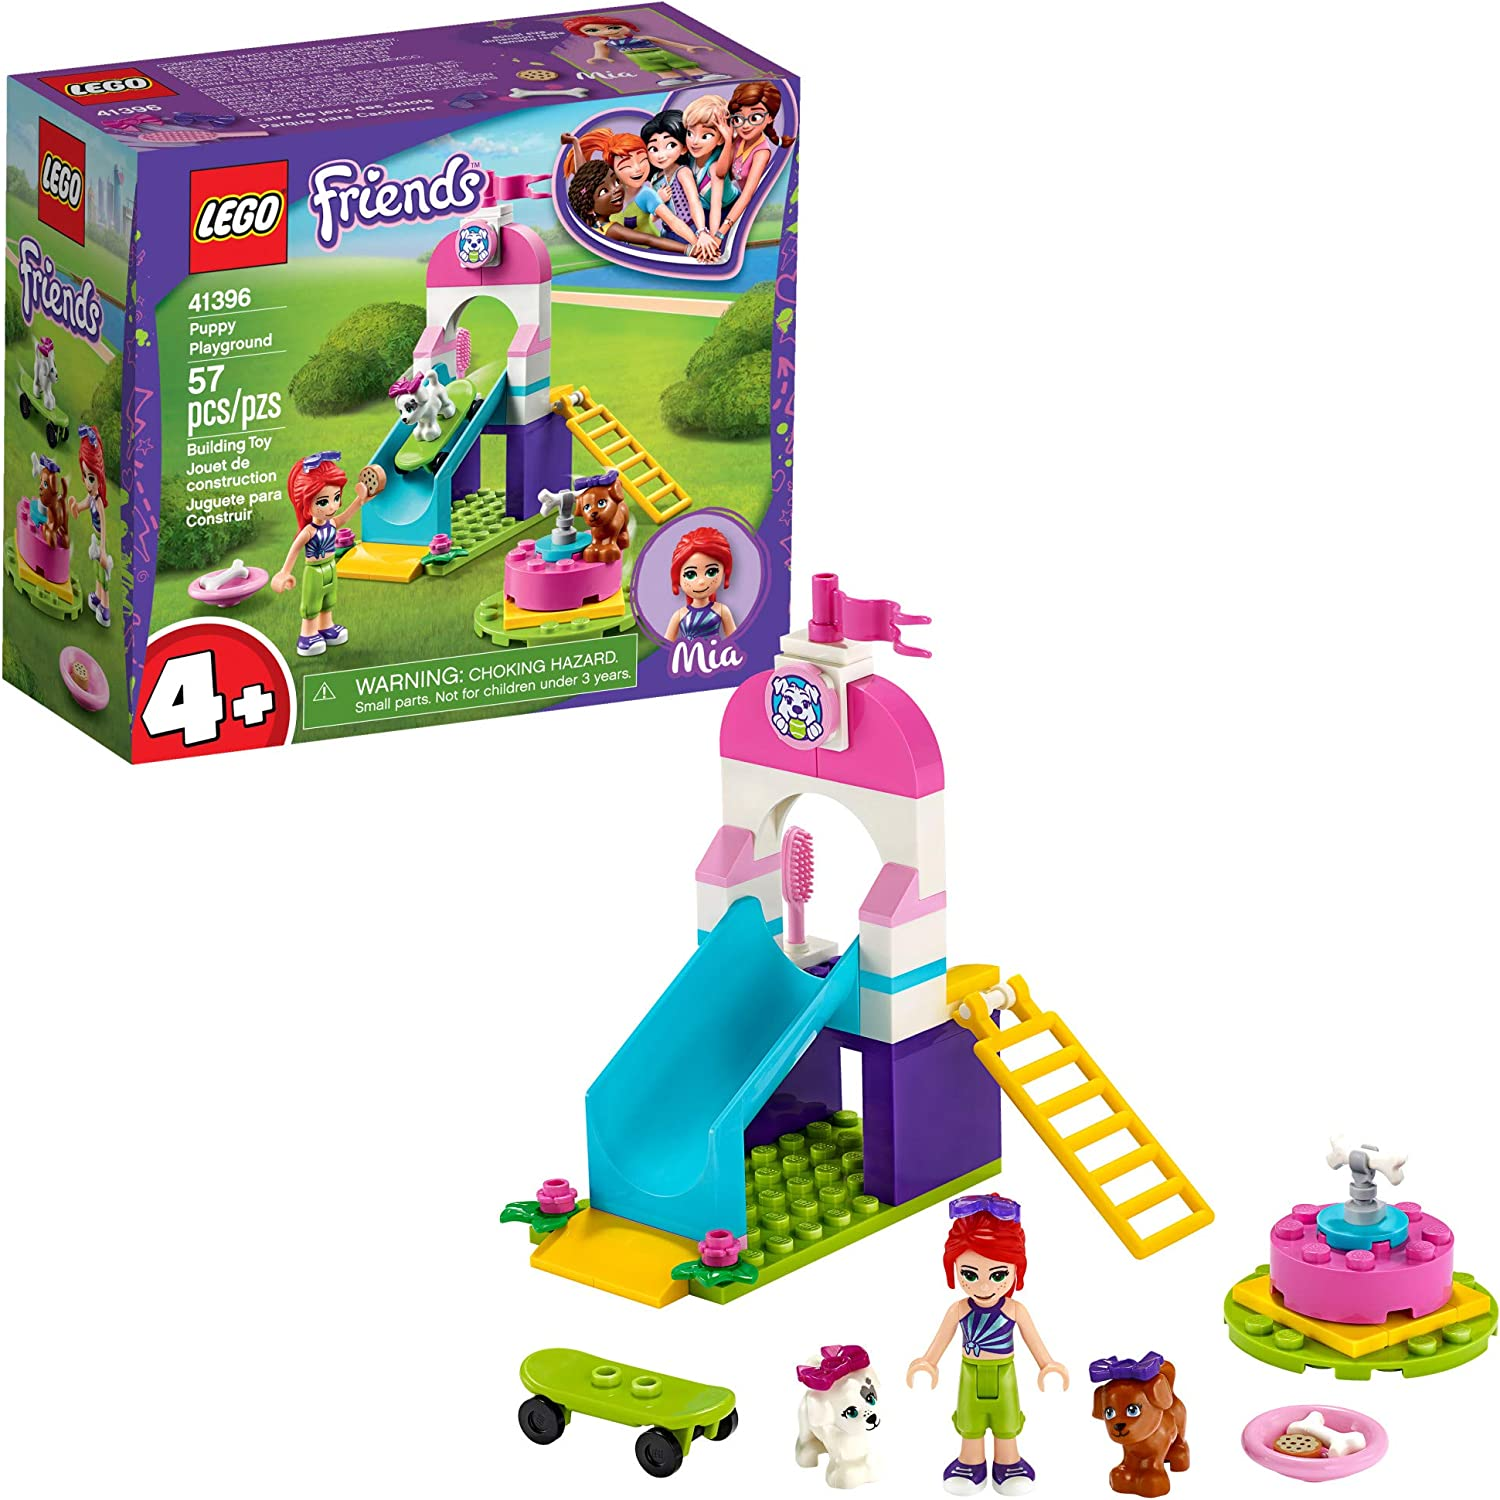 LEGO Friends Puppy Playground 41396 Starter Building Kit; Best Animal Toy Featuring Friends Character Mia, New 2020 (57 Pieces)